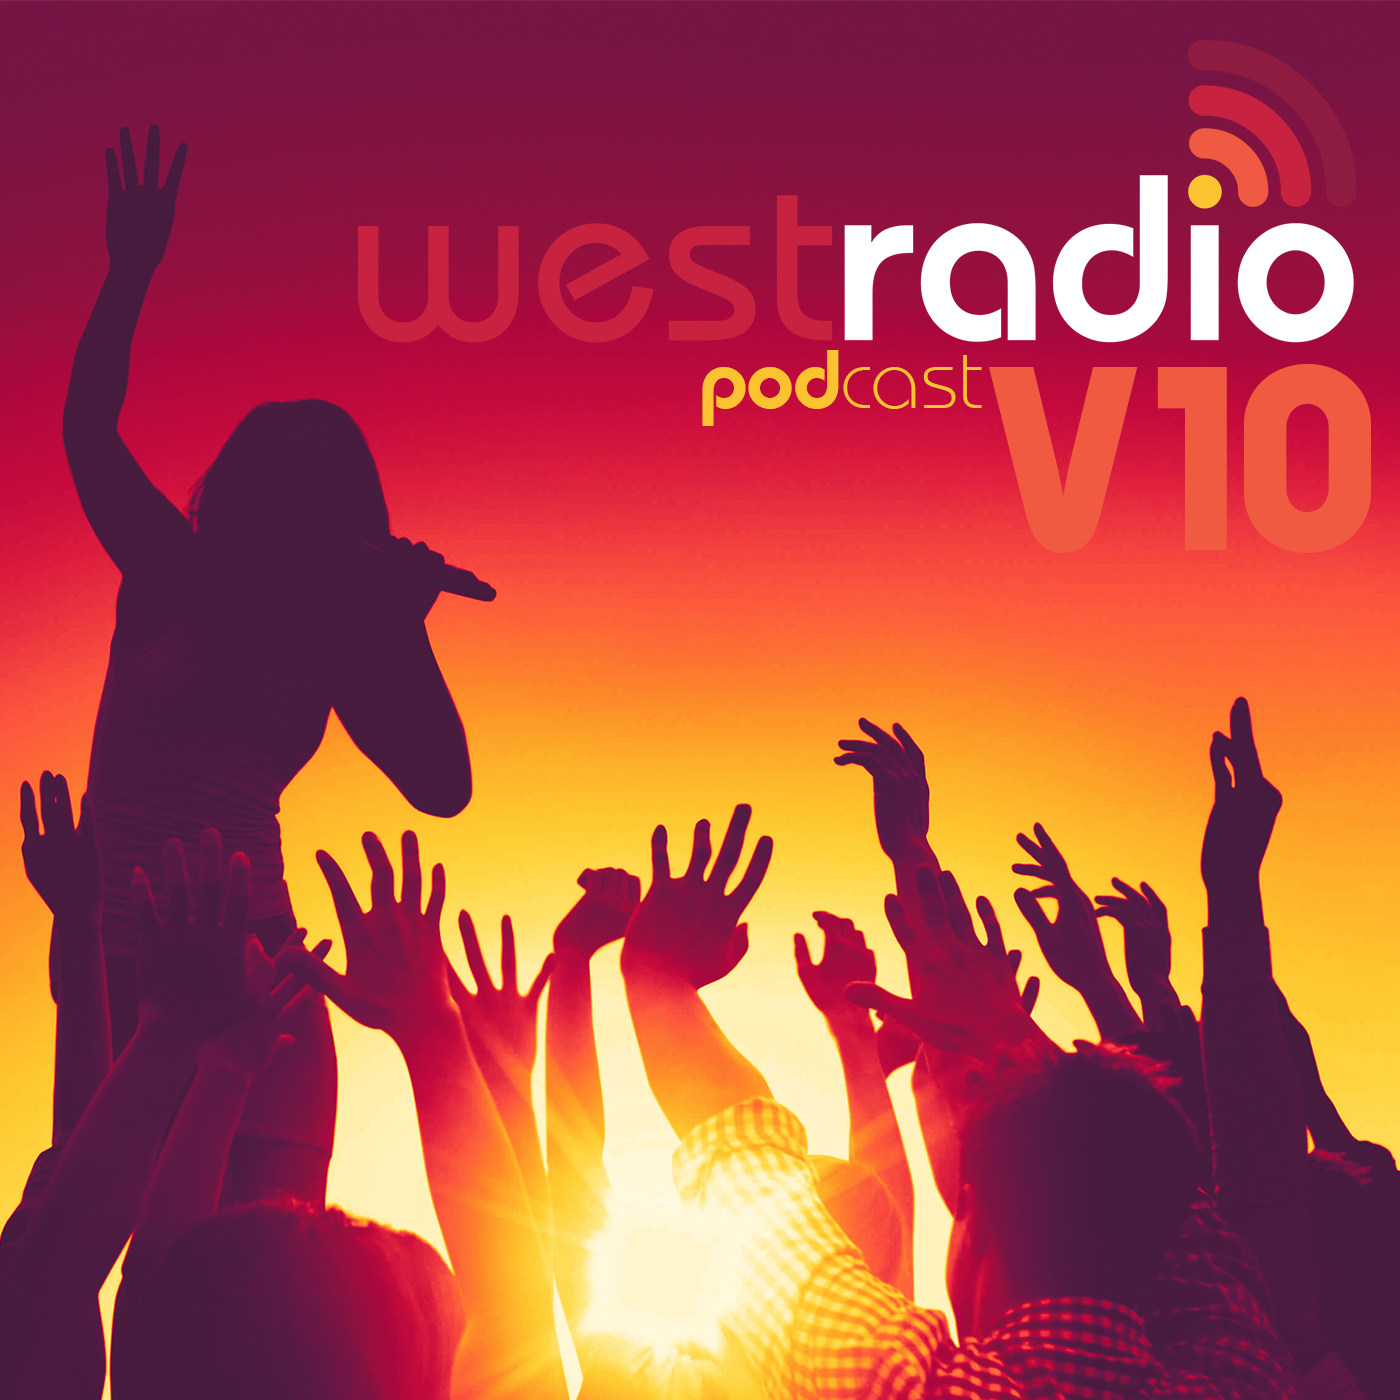 WestRadio - Podcast - Vince 10